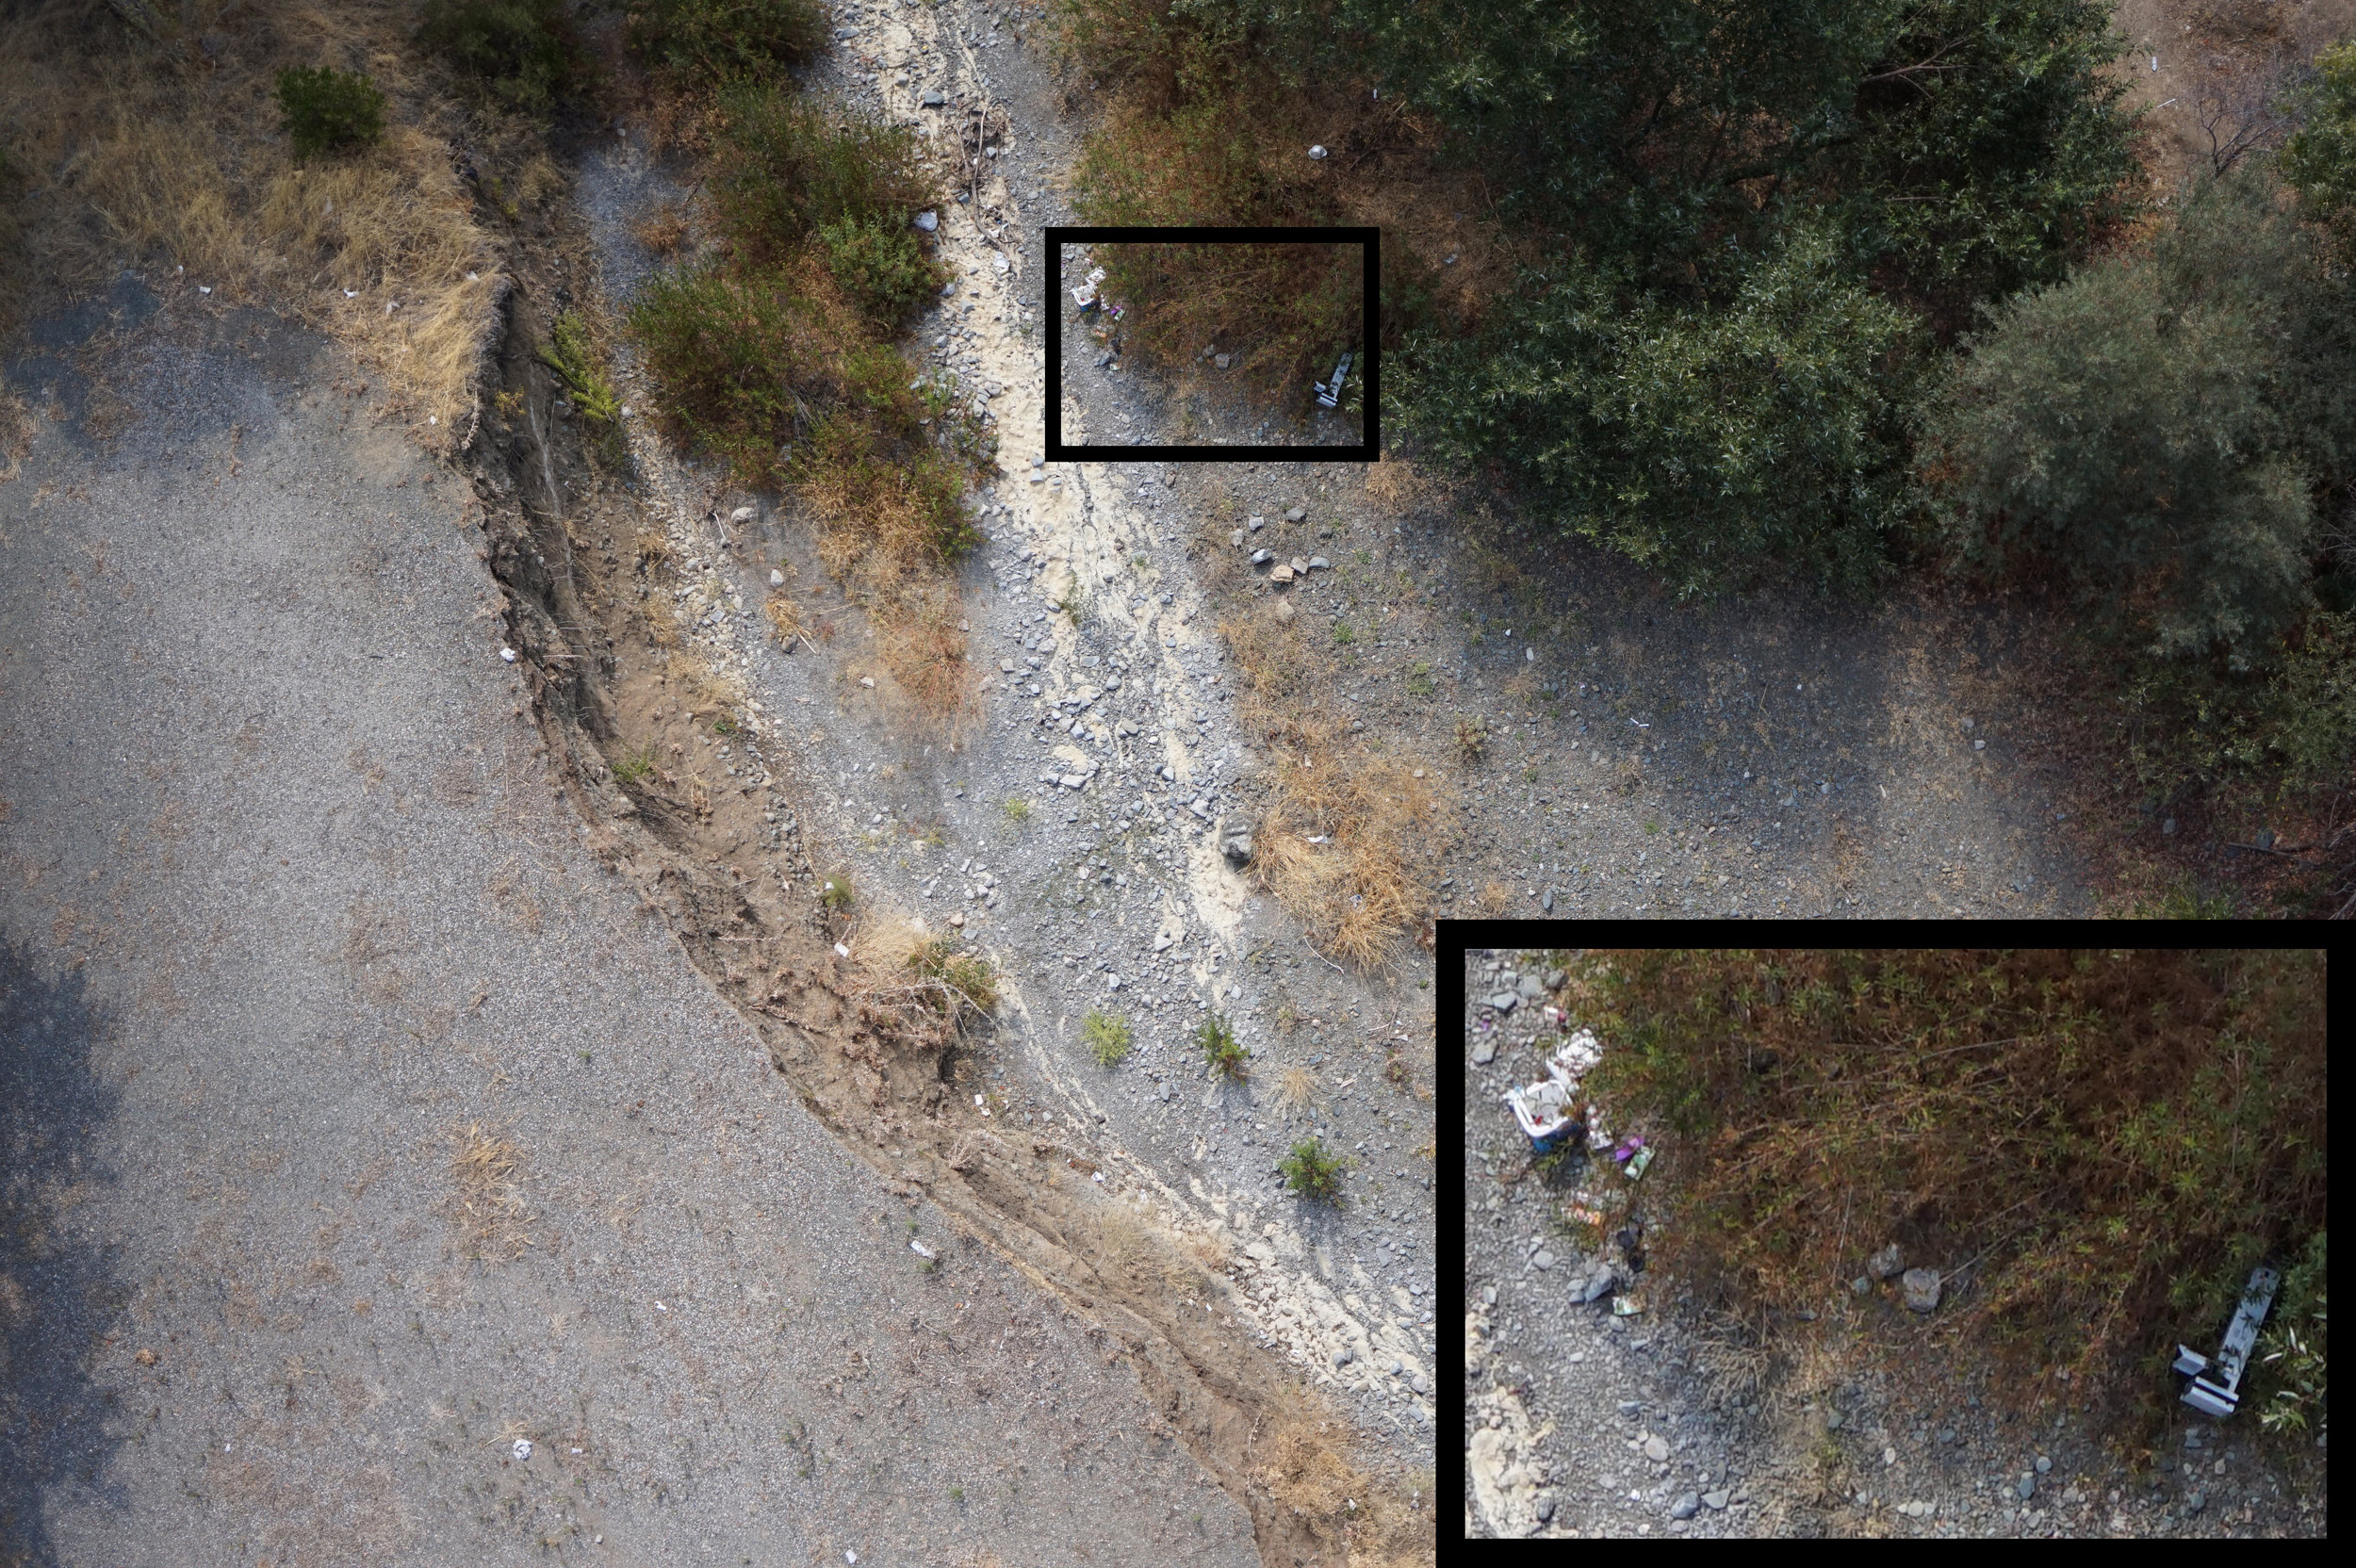 Figure 2. Trash shown using imagery taken from a drone flying 100 ft over Kirker Creek, Clayton, CA, Aug 14, 2018